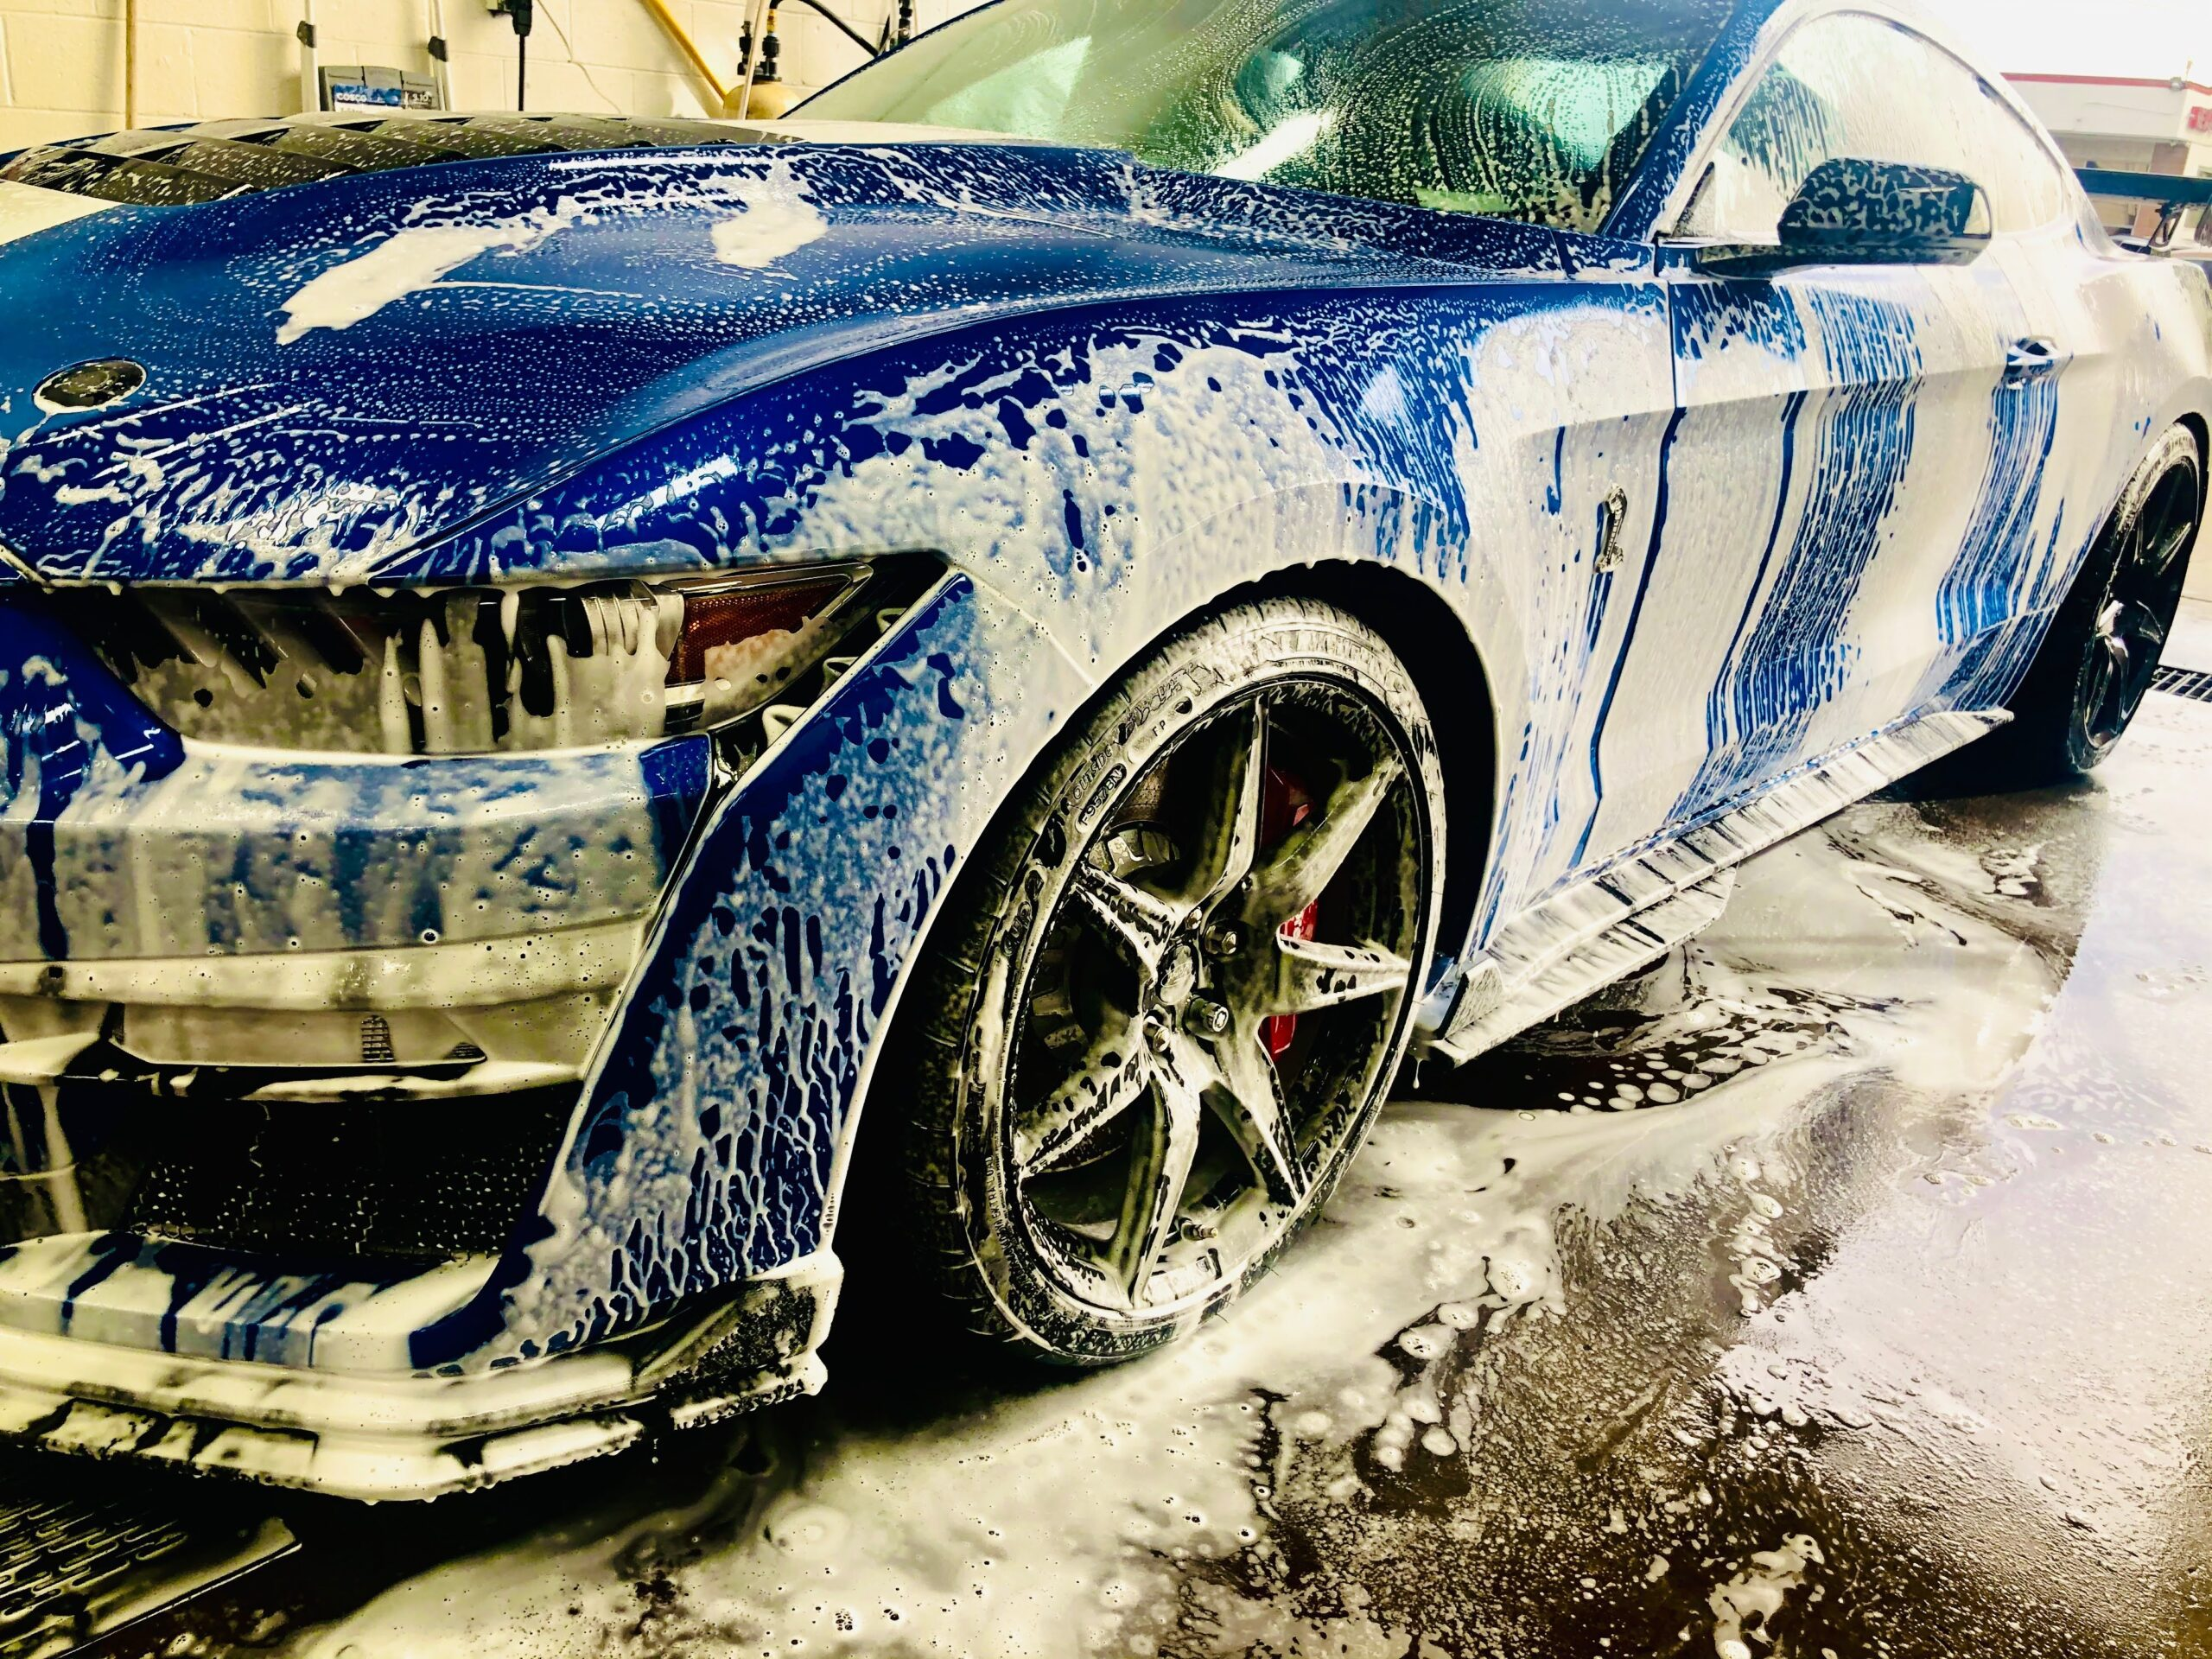 Blue Shelby GT Detail at Pro Auto Spa Colorado Springs